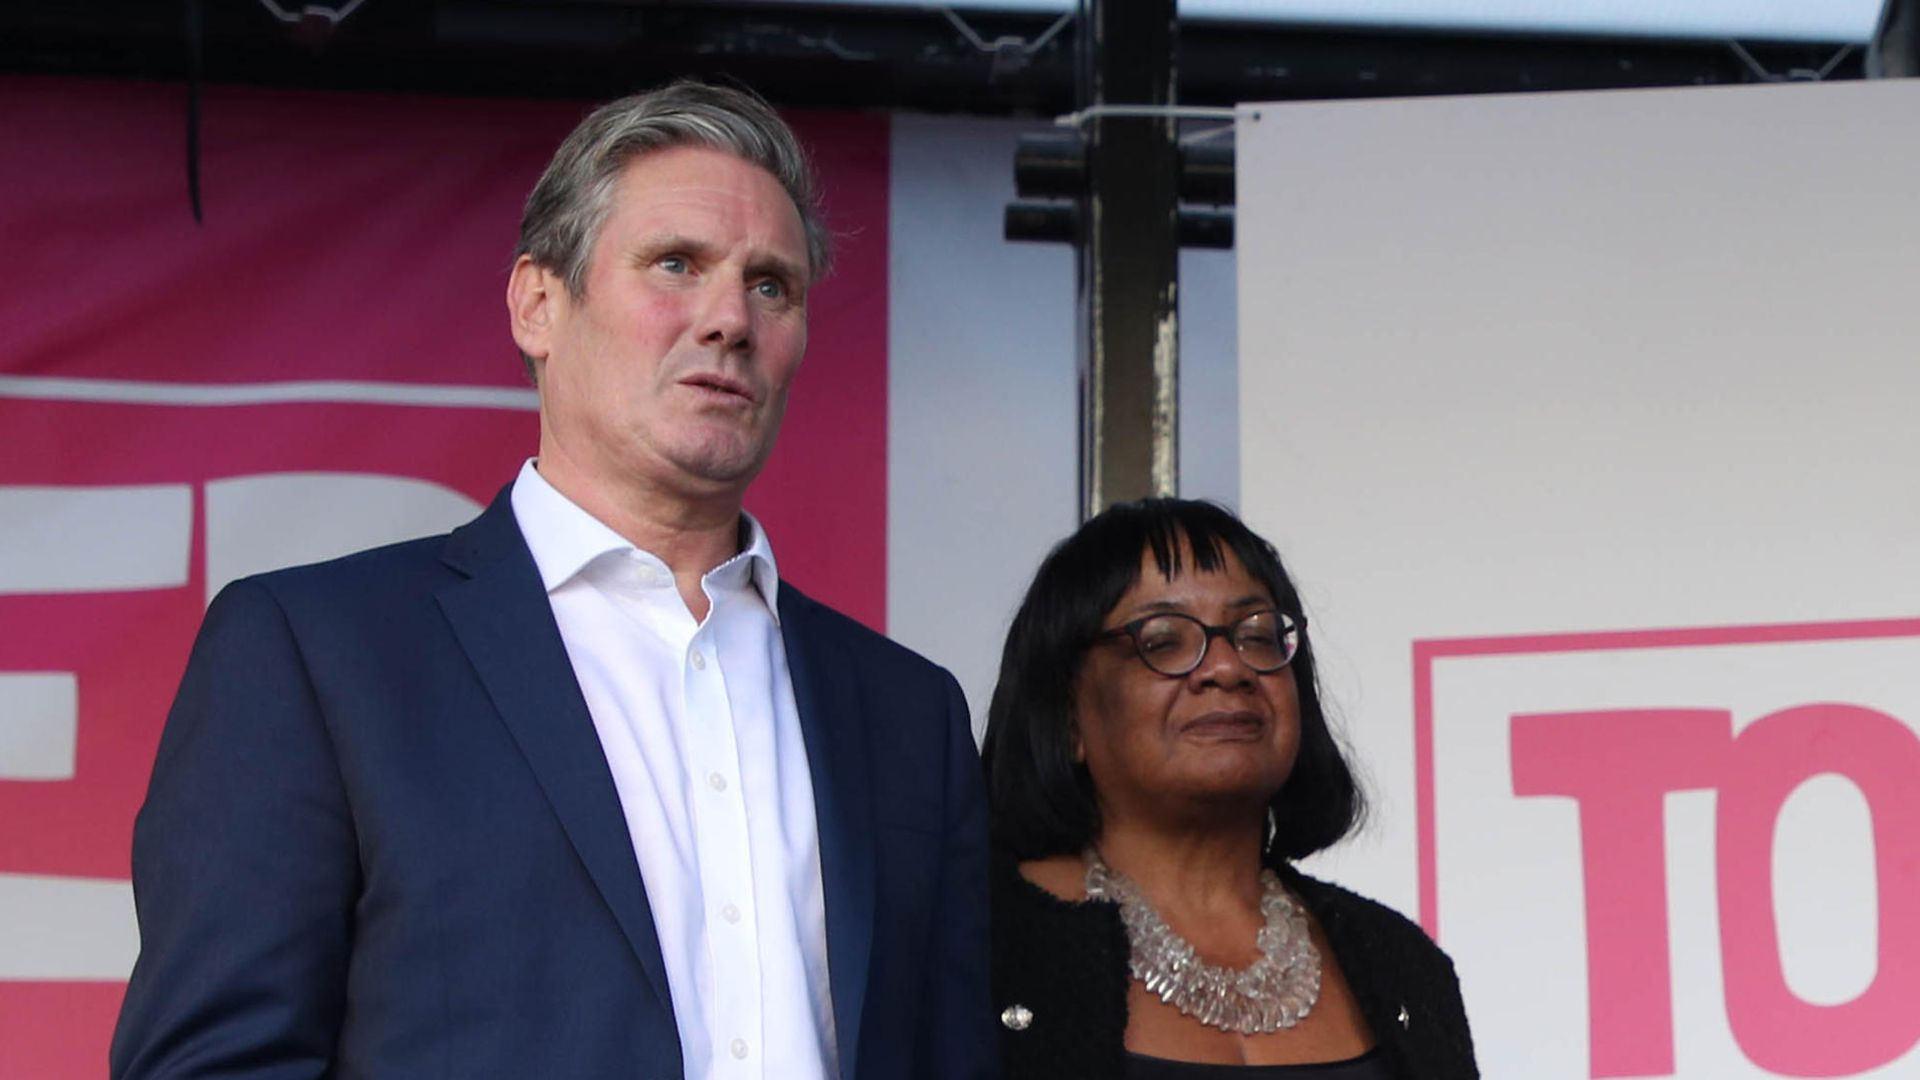 Sir Keir Starmer and Diane Abbott at an anti-Brexit rally organised by the People's Vote campaign - Credit: PA